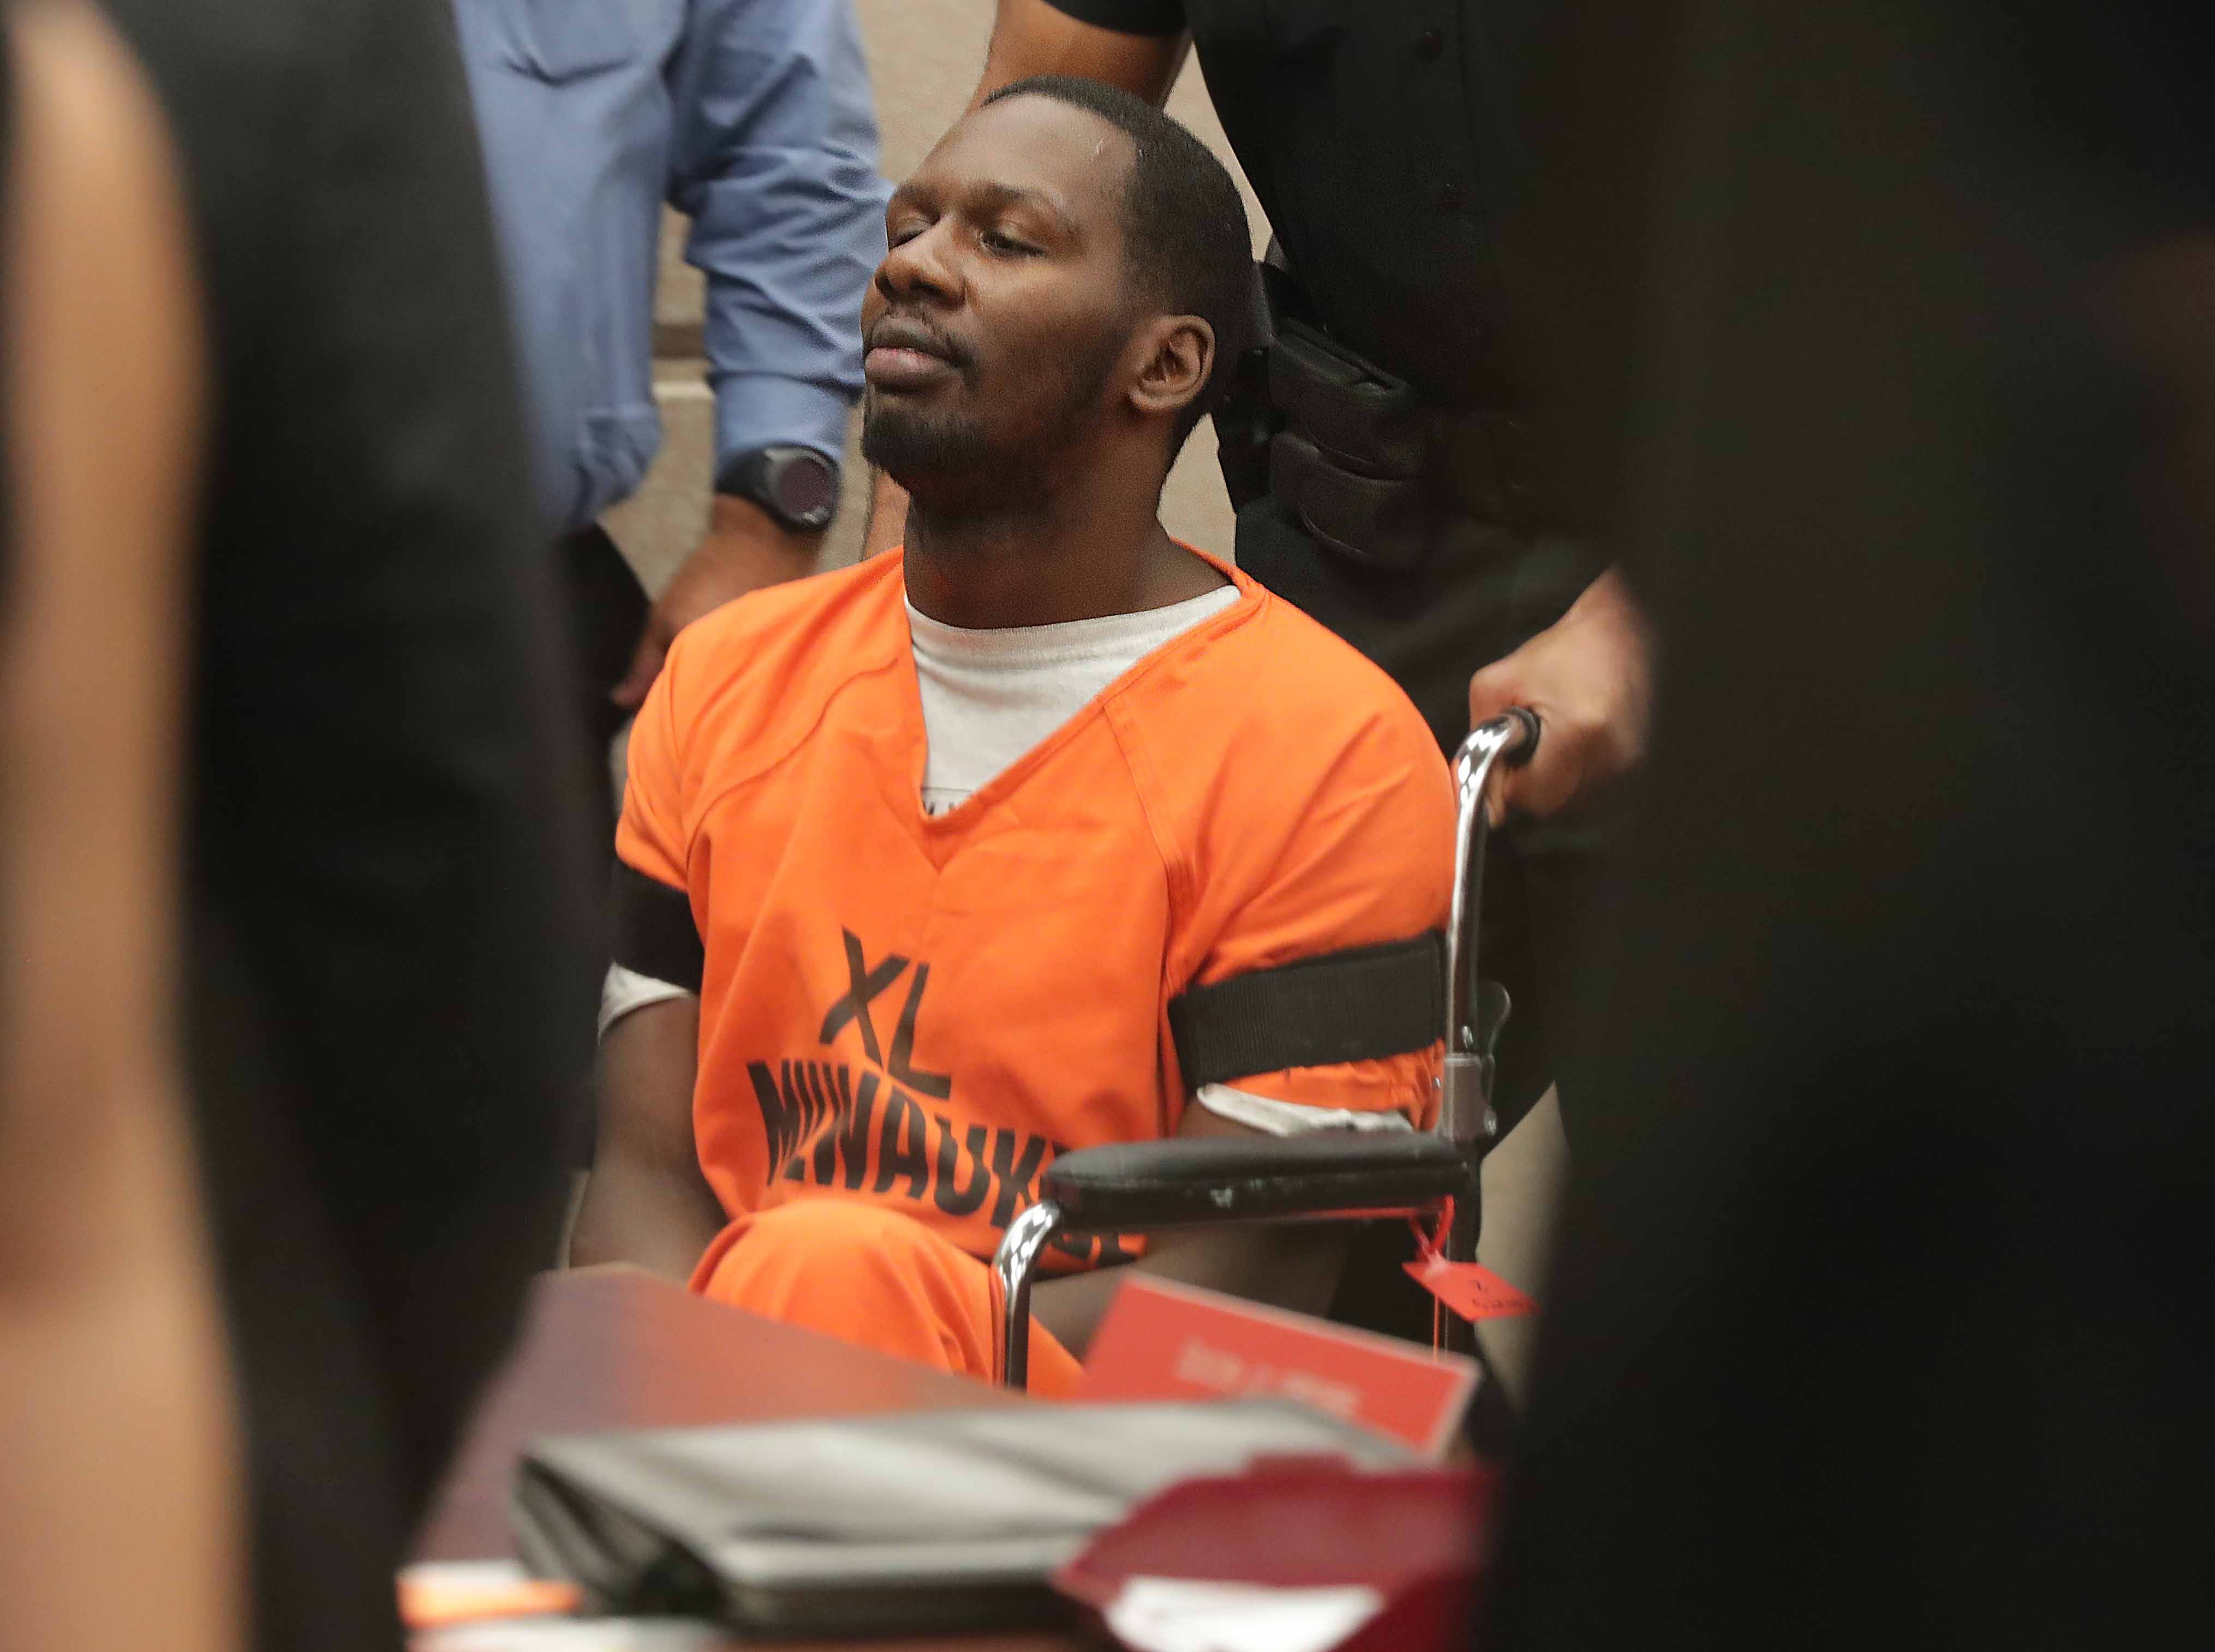 Jonathan Copeland Jr., 30, who is charged in the fatal shooting of Milwaukee Police Officer Michael Michalski, appears in court on Thursday, August 9, 2018.